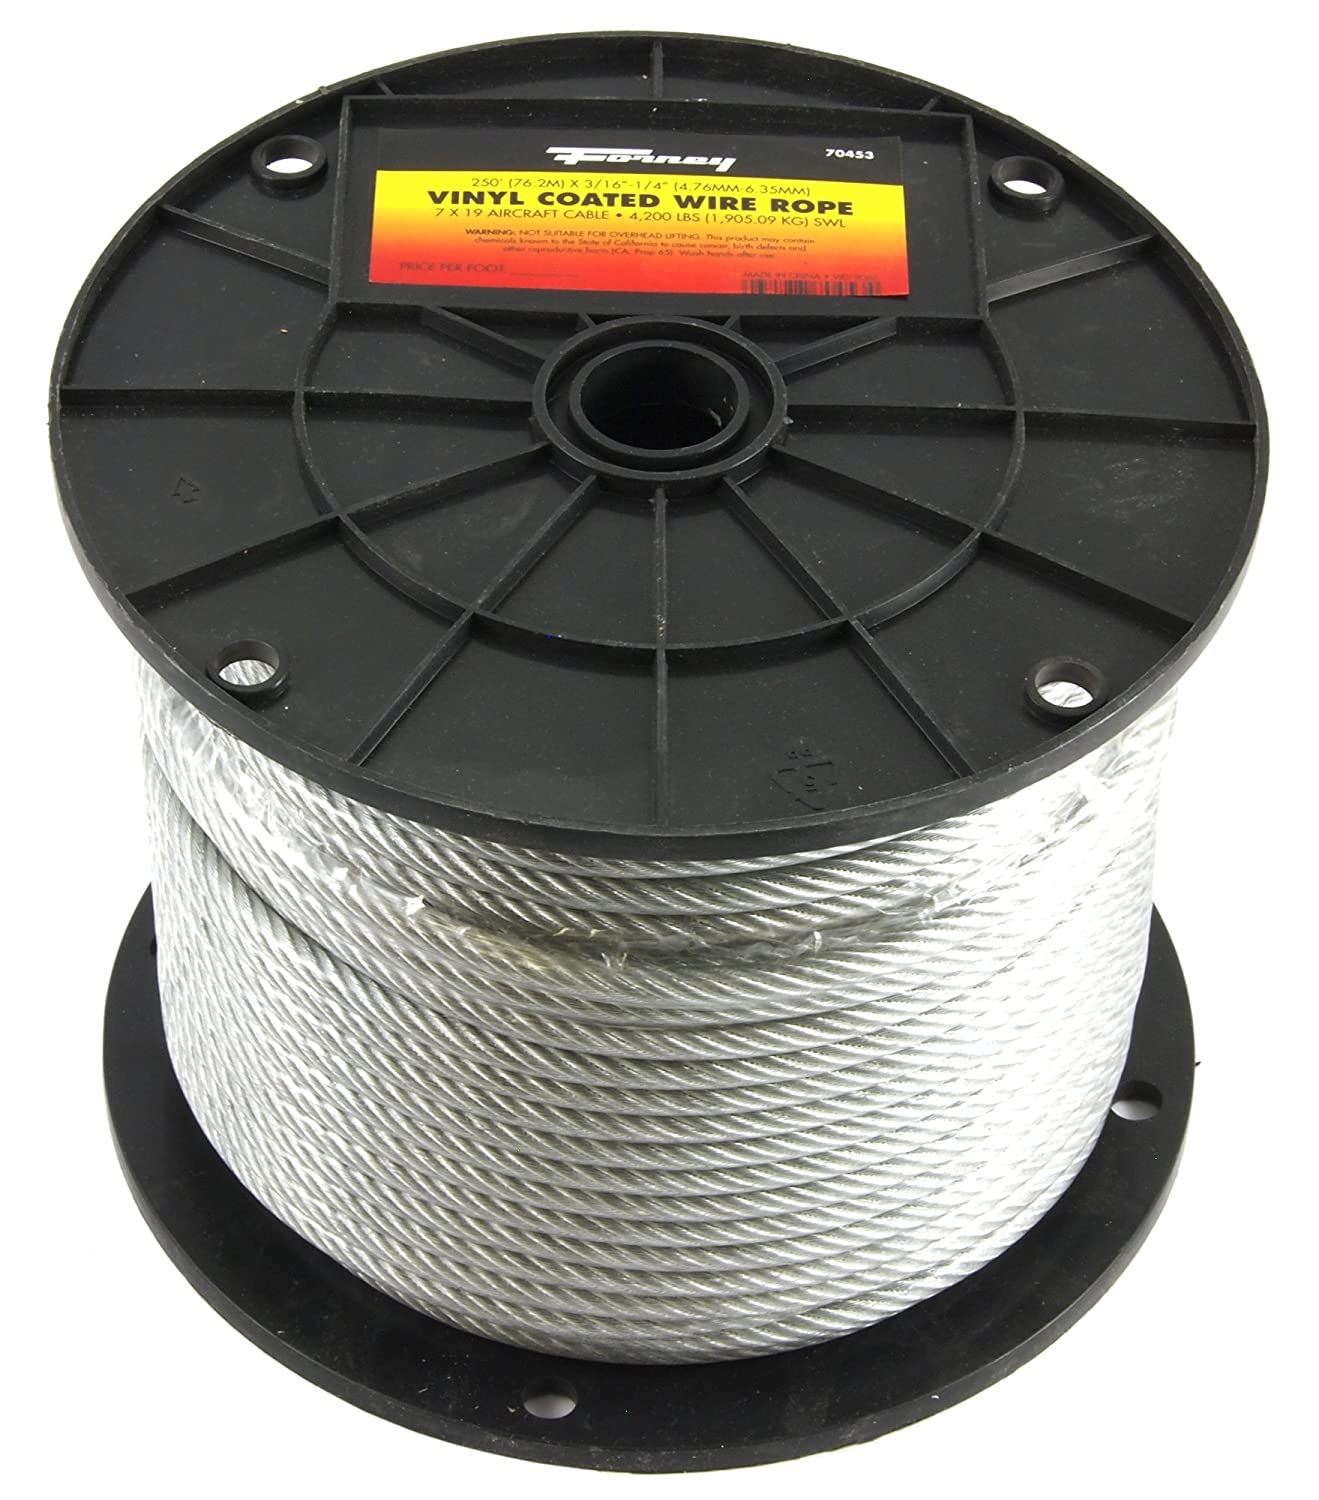 Amazon.com: Forney 70453 Wire Rope, Vinyl Coated Aircraft Cable, 250 ...